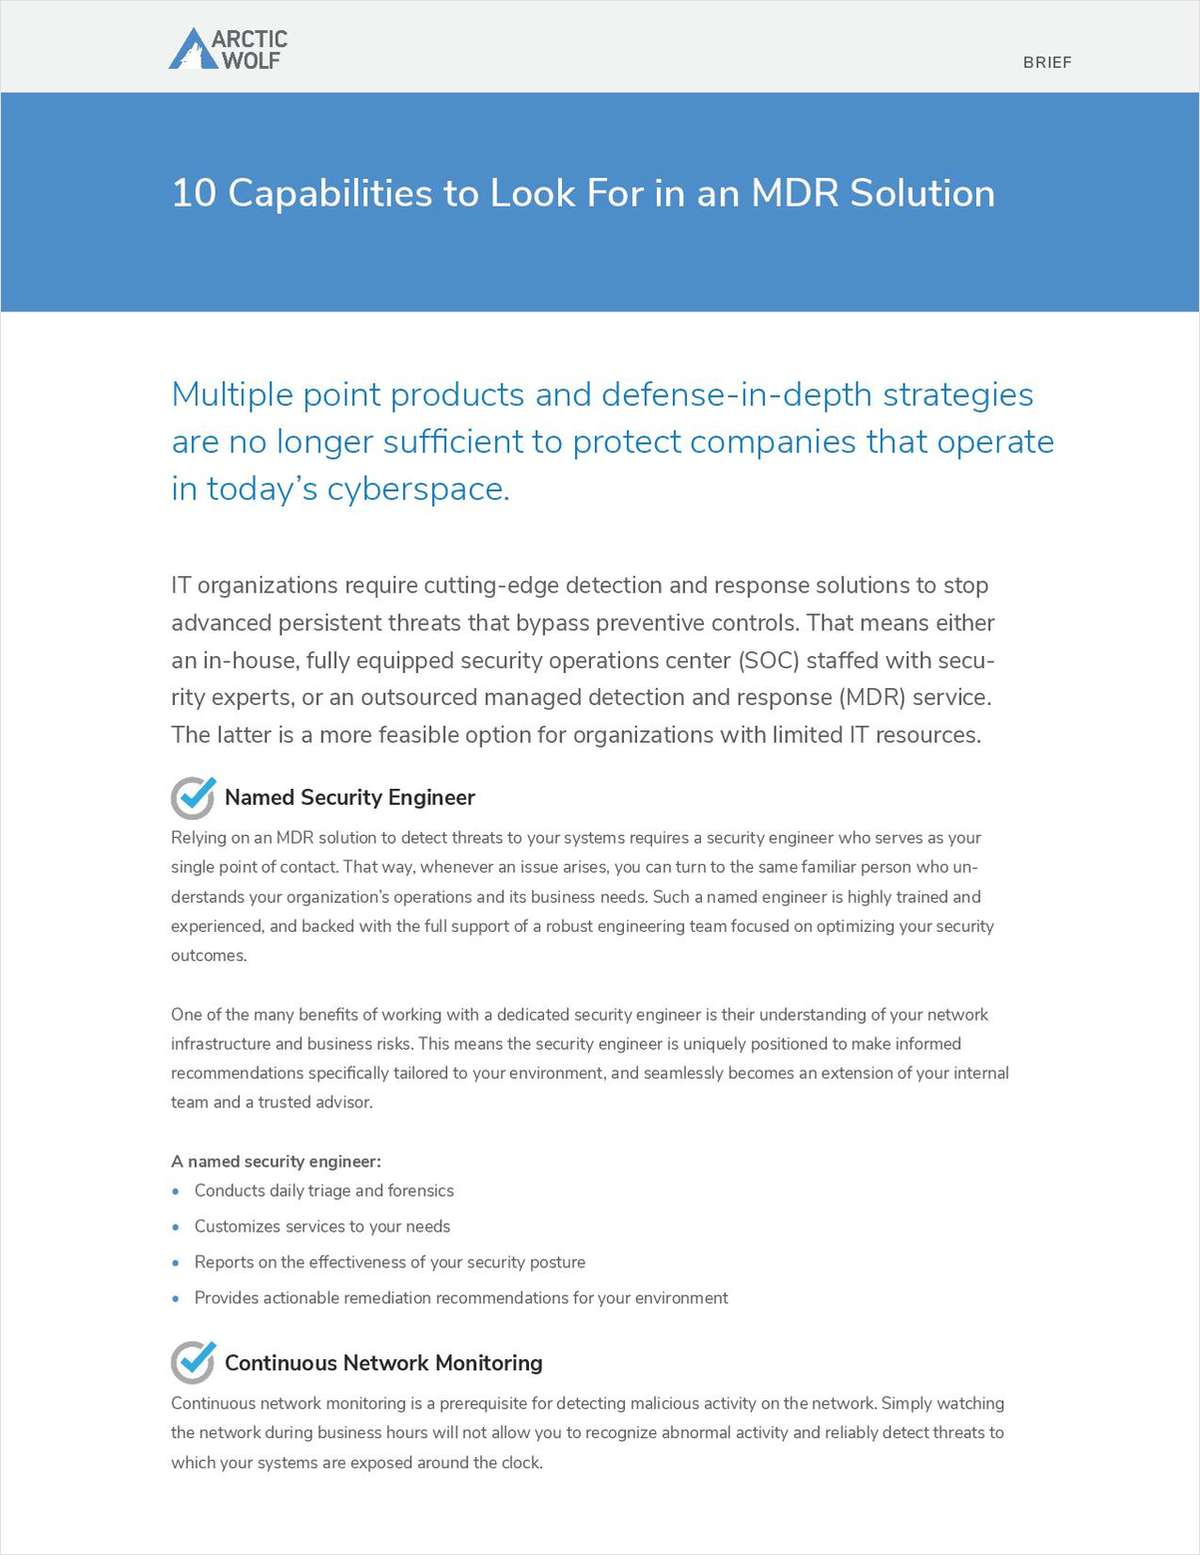 10 Capabilities to Look For in an MDR Solution